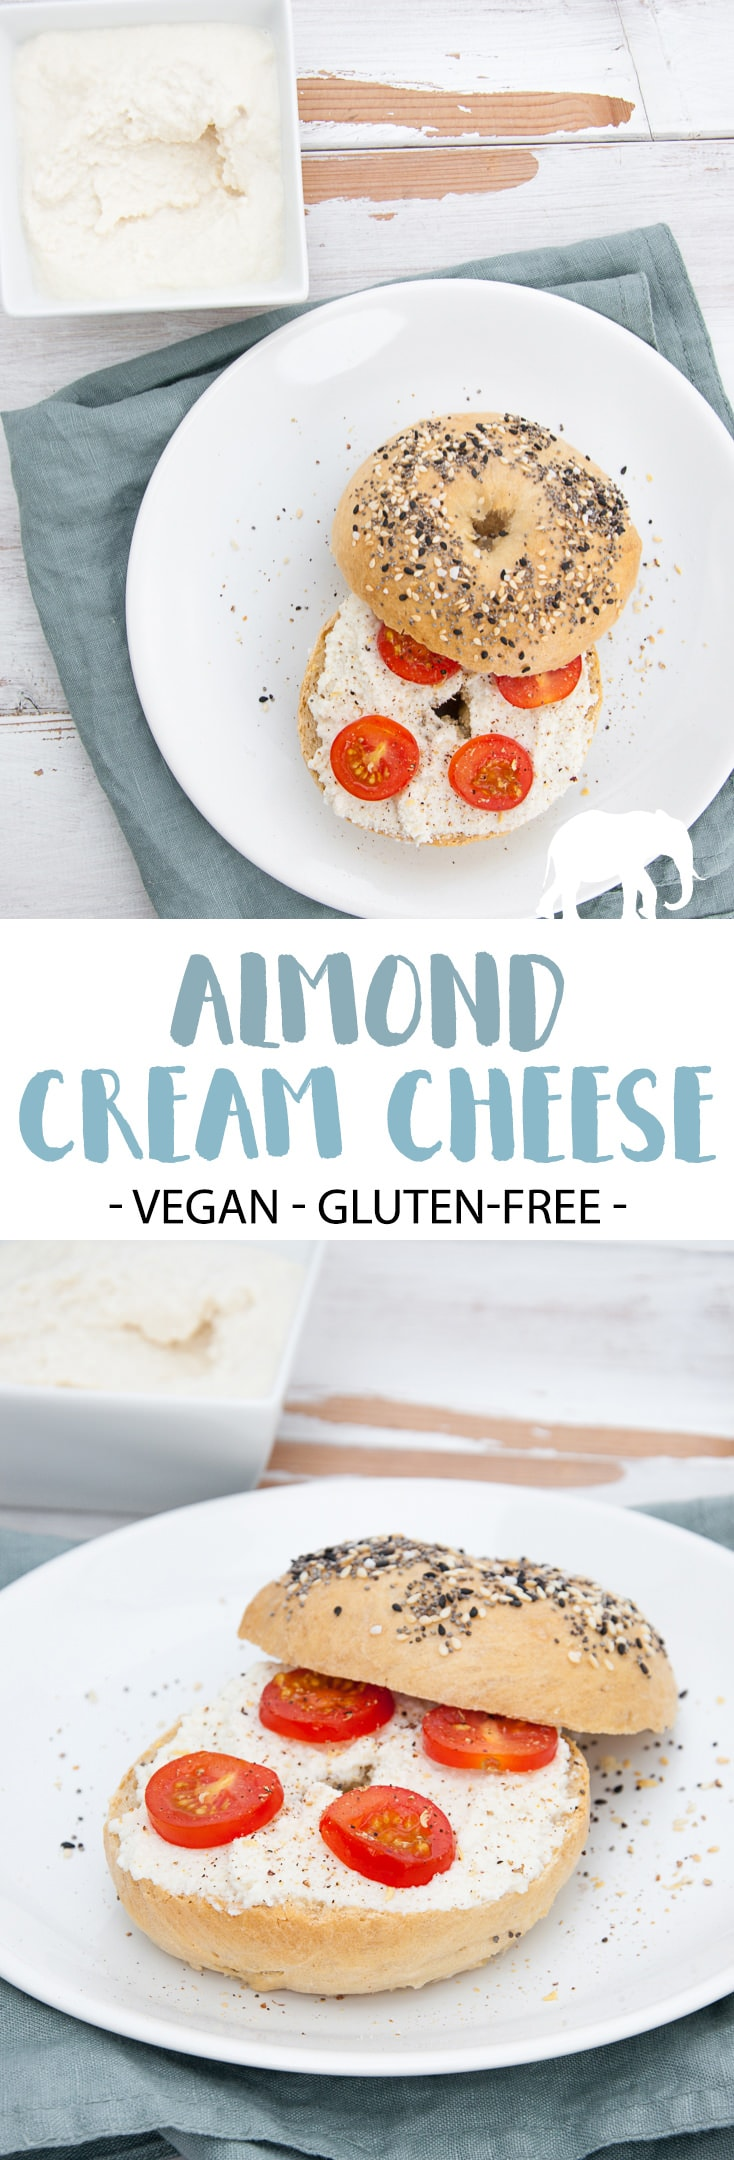 Almond Cream Cheese (vegan and gluten-free) #almond #creamcheese #vegancheese #vegan #glutenfree